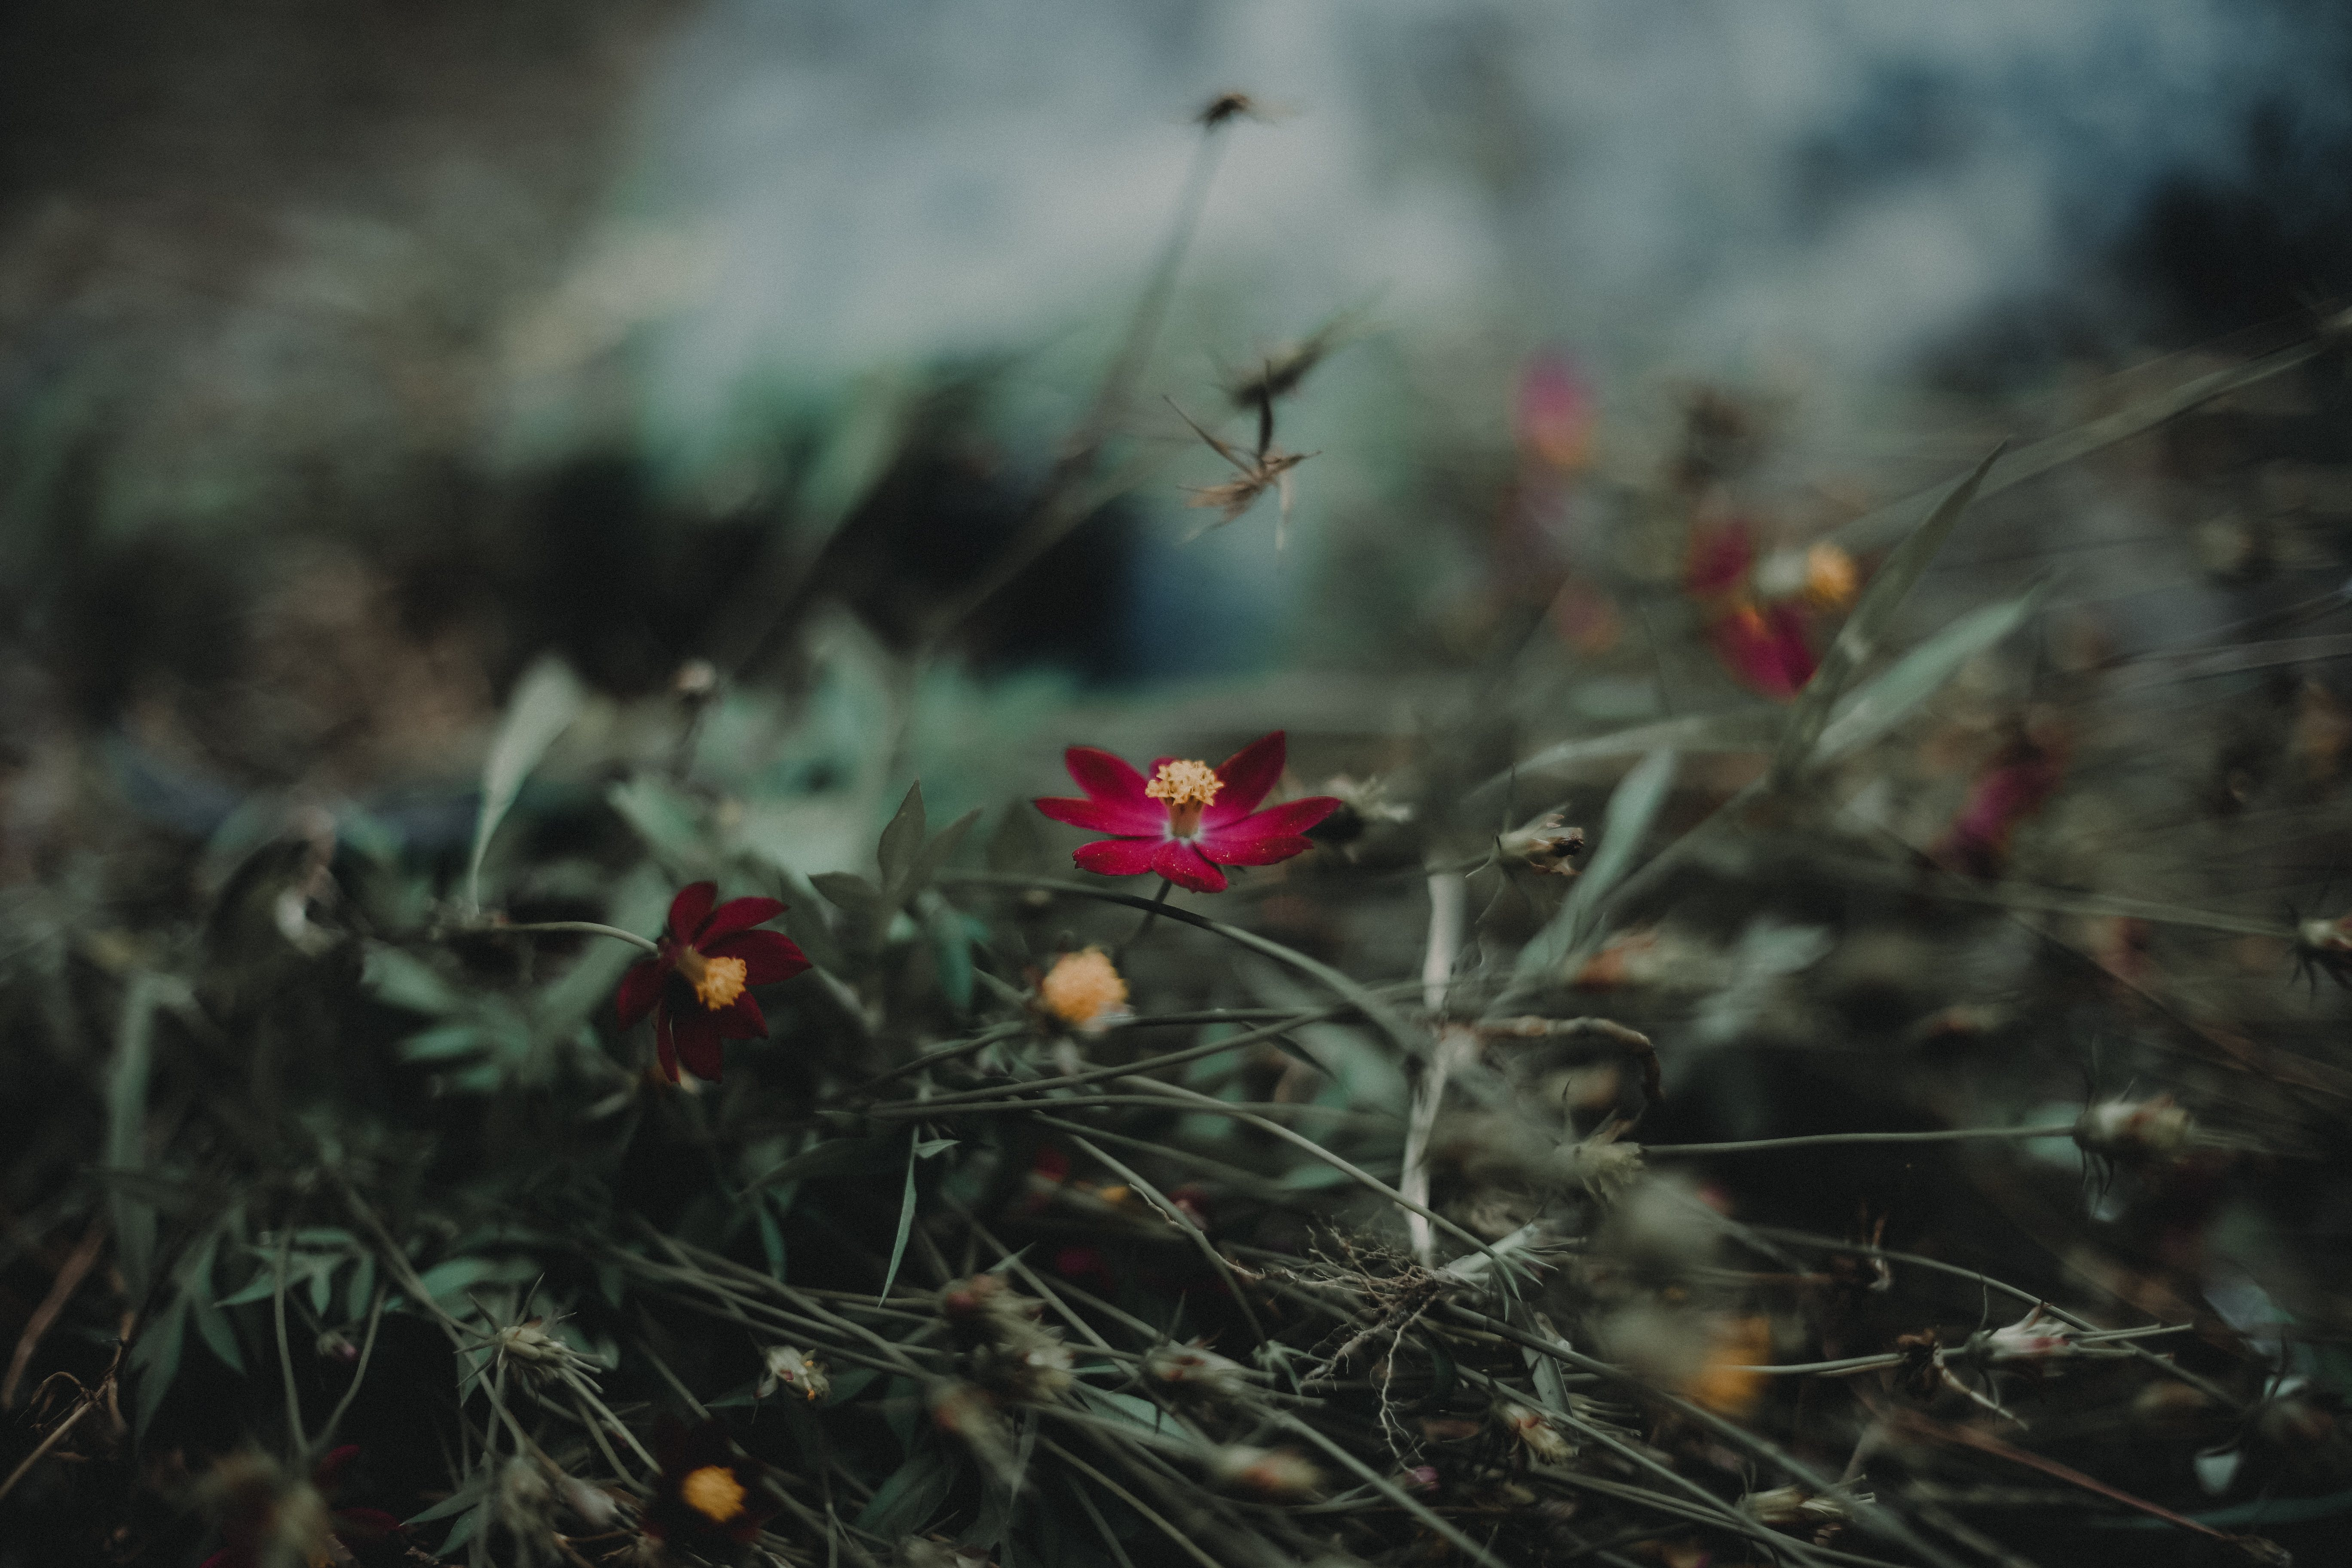 Shallow Focus Photography of Maroon Petal Flower